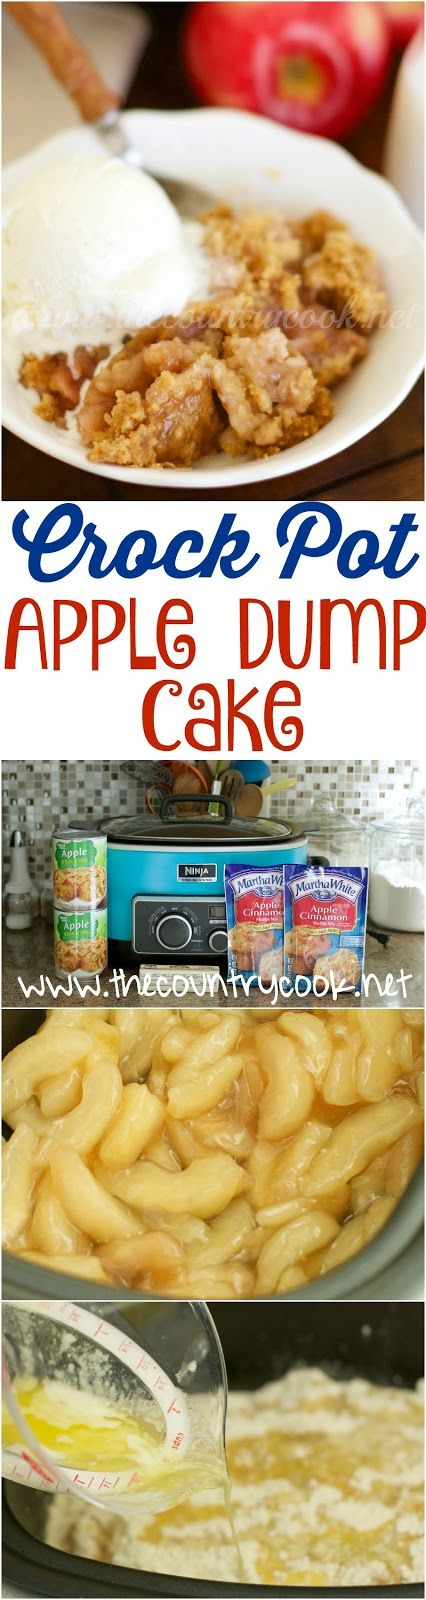 Apple Cobbler In Crock Pot With Spice Cake Mix